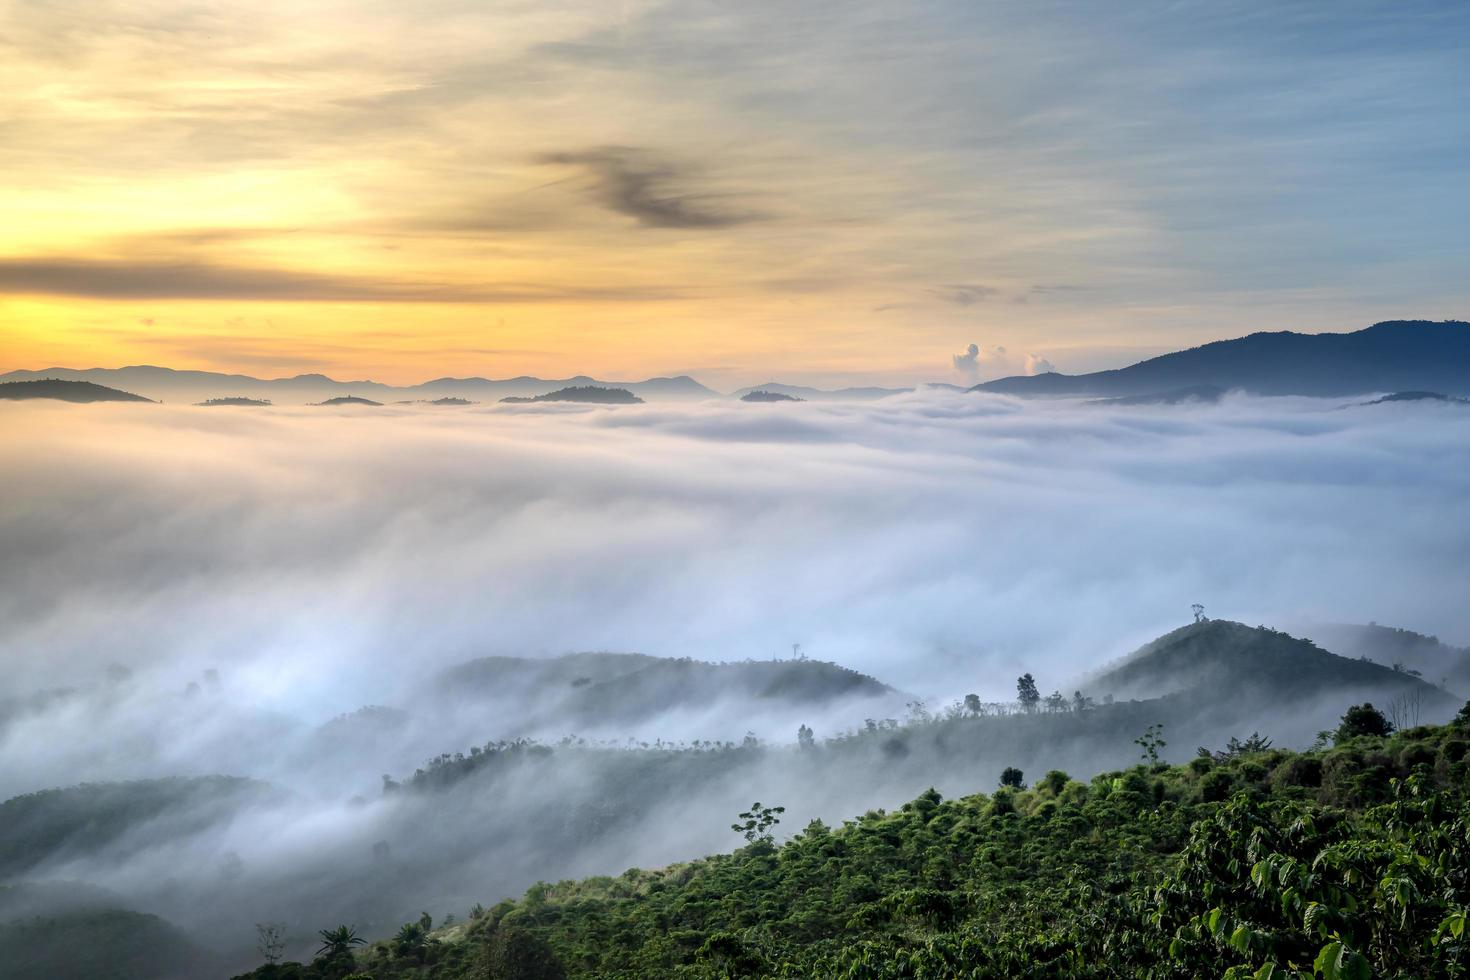 Cloudy misty hills and sunset photo